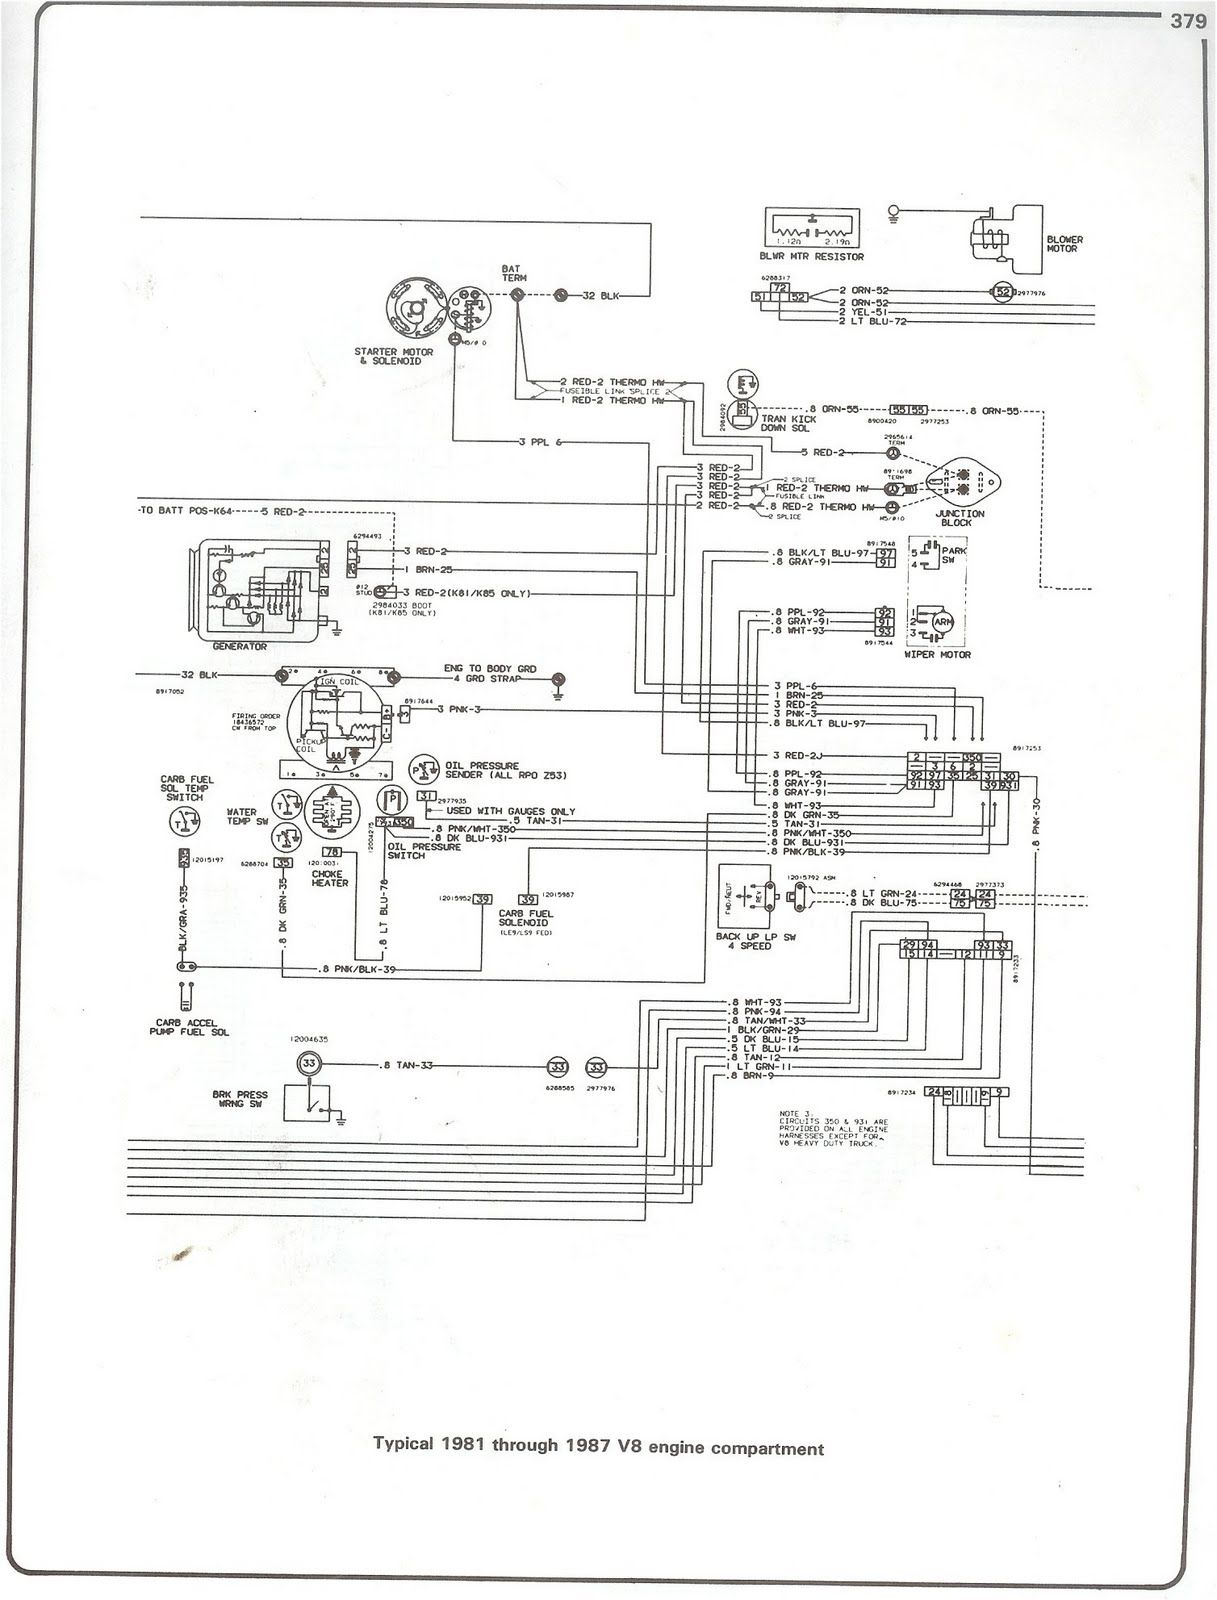 This is engine compartment wiring diagram for 1981 trough 1987 Chevrolet V8  Truck. Description from autowiringdiagra… | Chevy trucks, 1979 chevy truck,  Truck engine | 1981 Chevy C30 Wiring Diagram |  | Pinterest